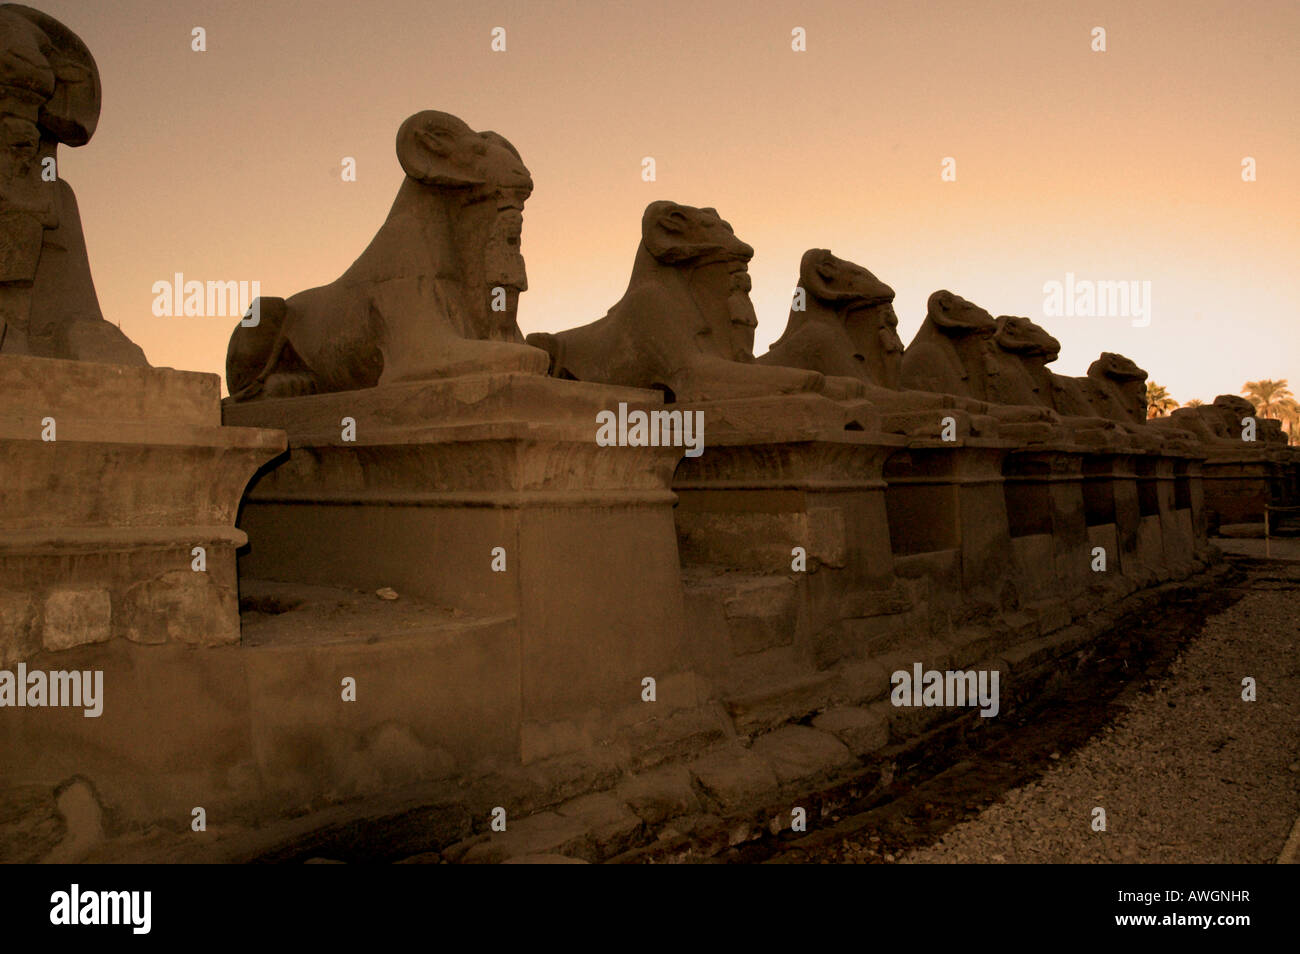 Avenue of the Sphinxes, Temple of Karnac, Luxor, Egypt - Stock Image